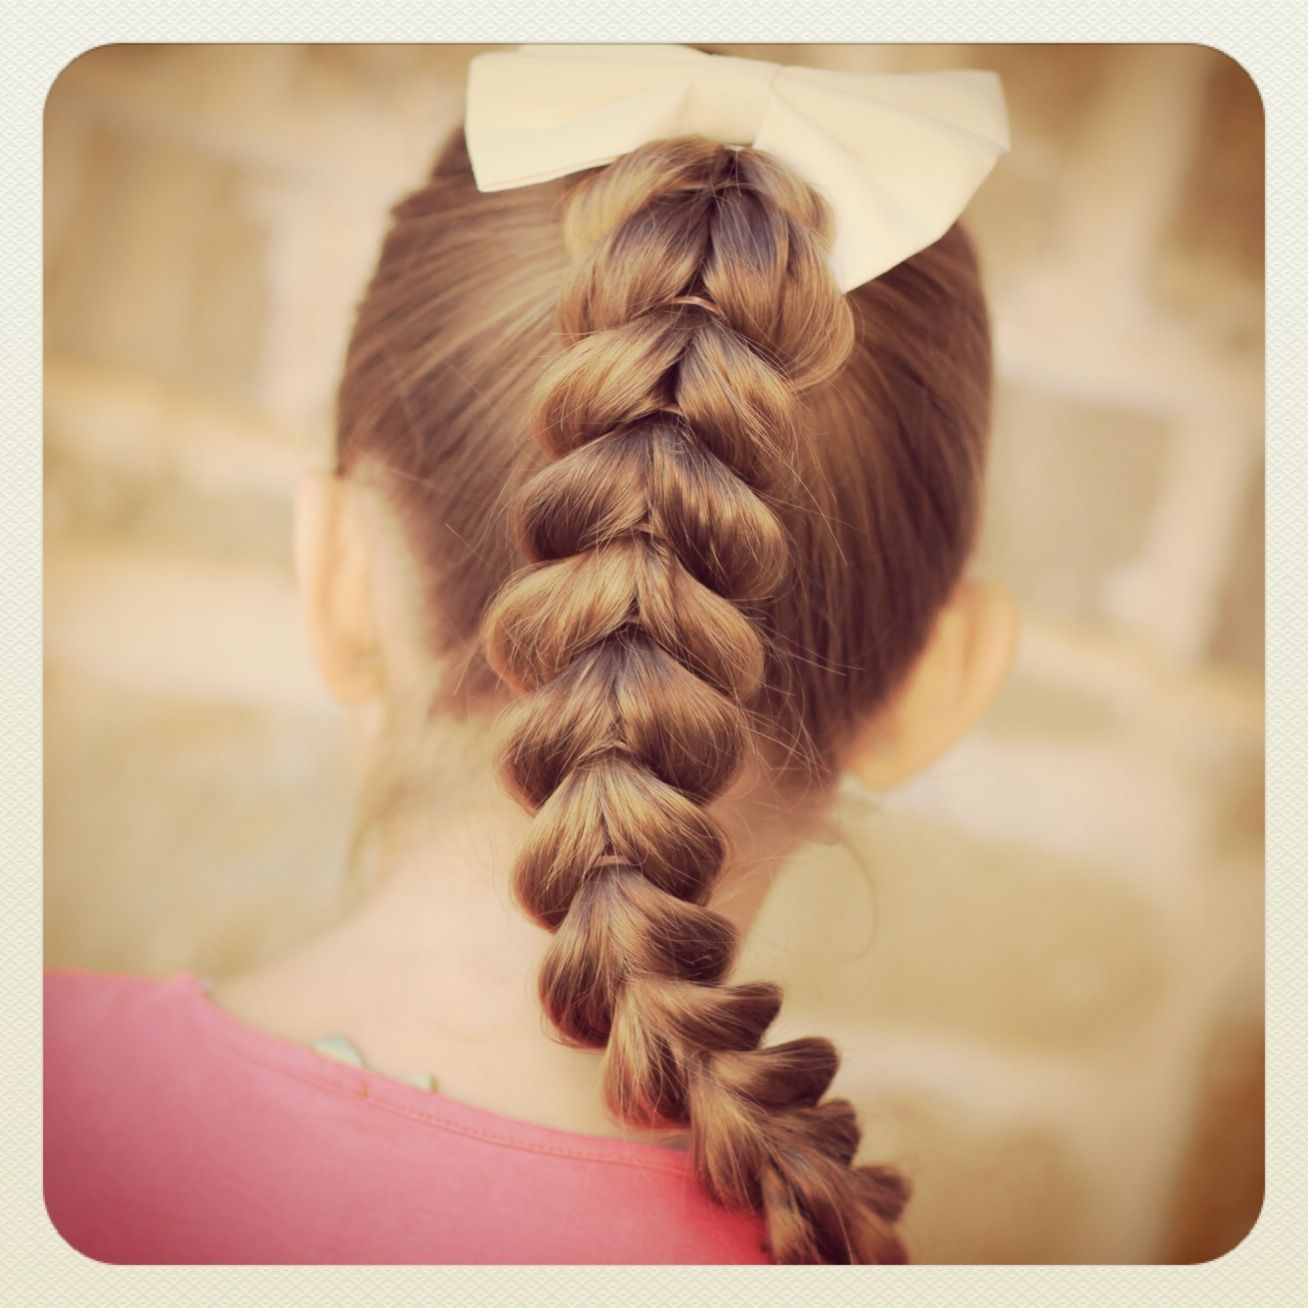 Cute easy hairstyles that kids can do - Plus This Pull Through Braid Is So Easy Even A Daddy Can Do Easy Braided Hairstylescute